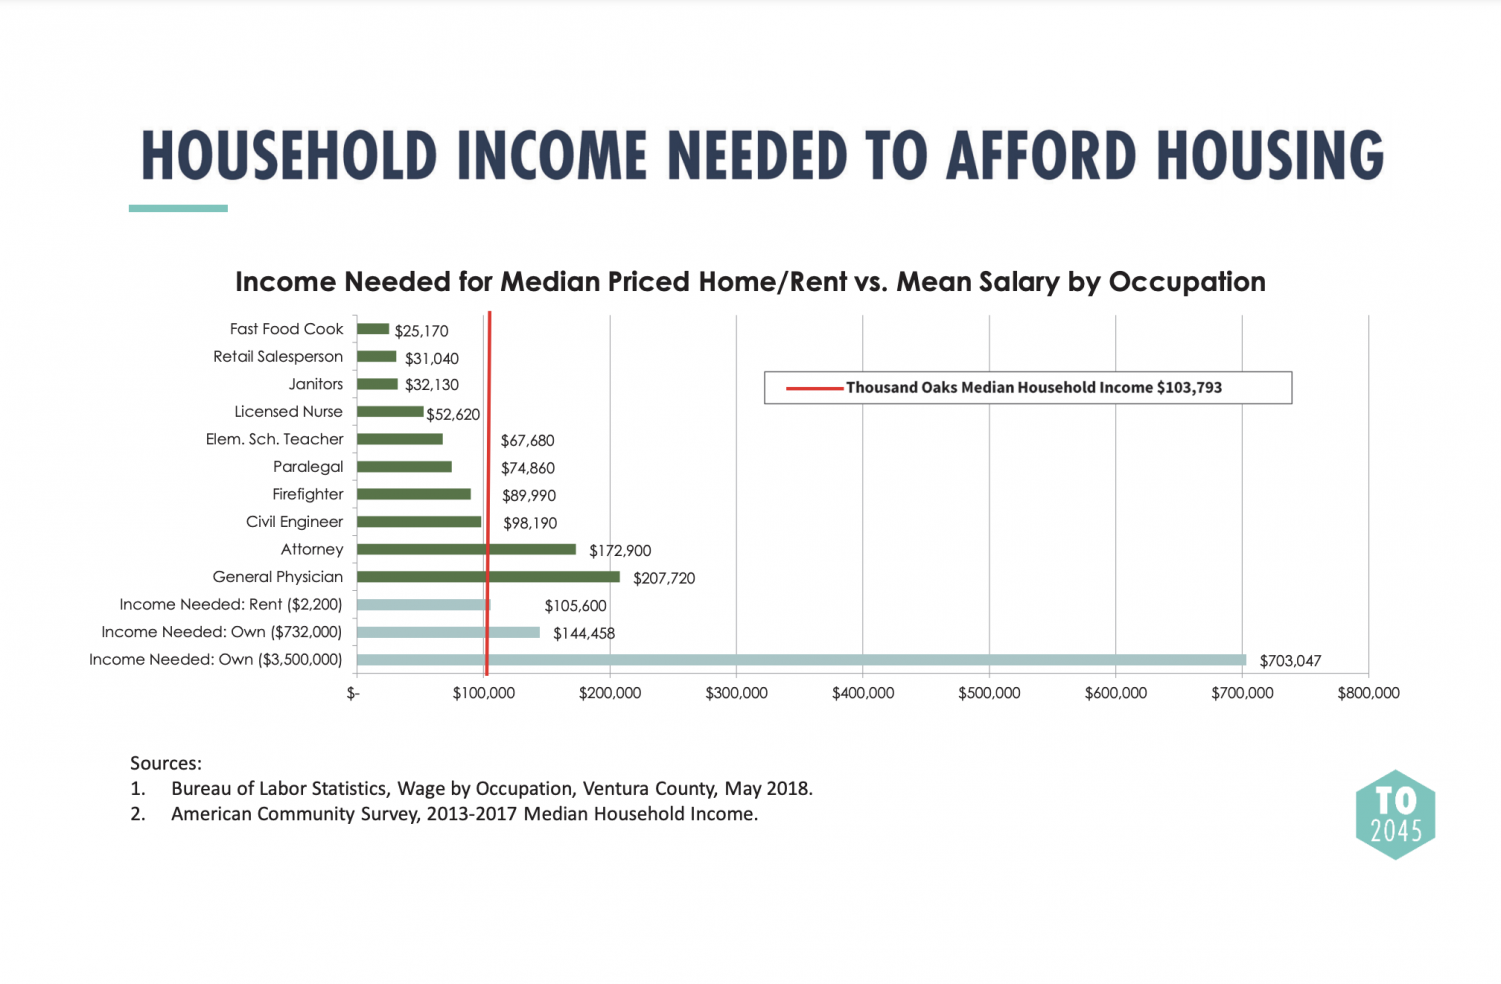 Screenshot of the Household income that is needed to afford housing from the